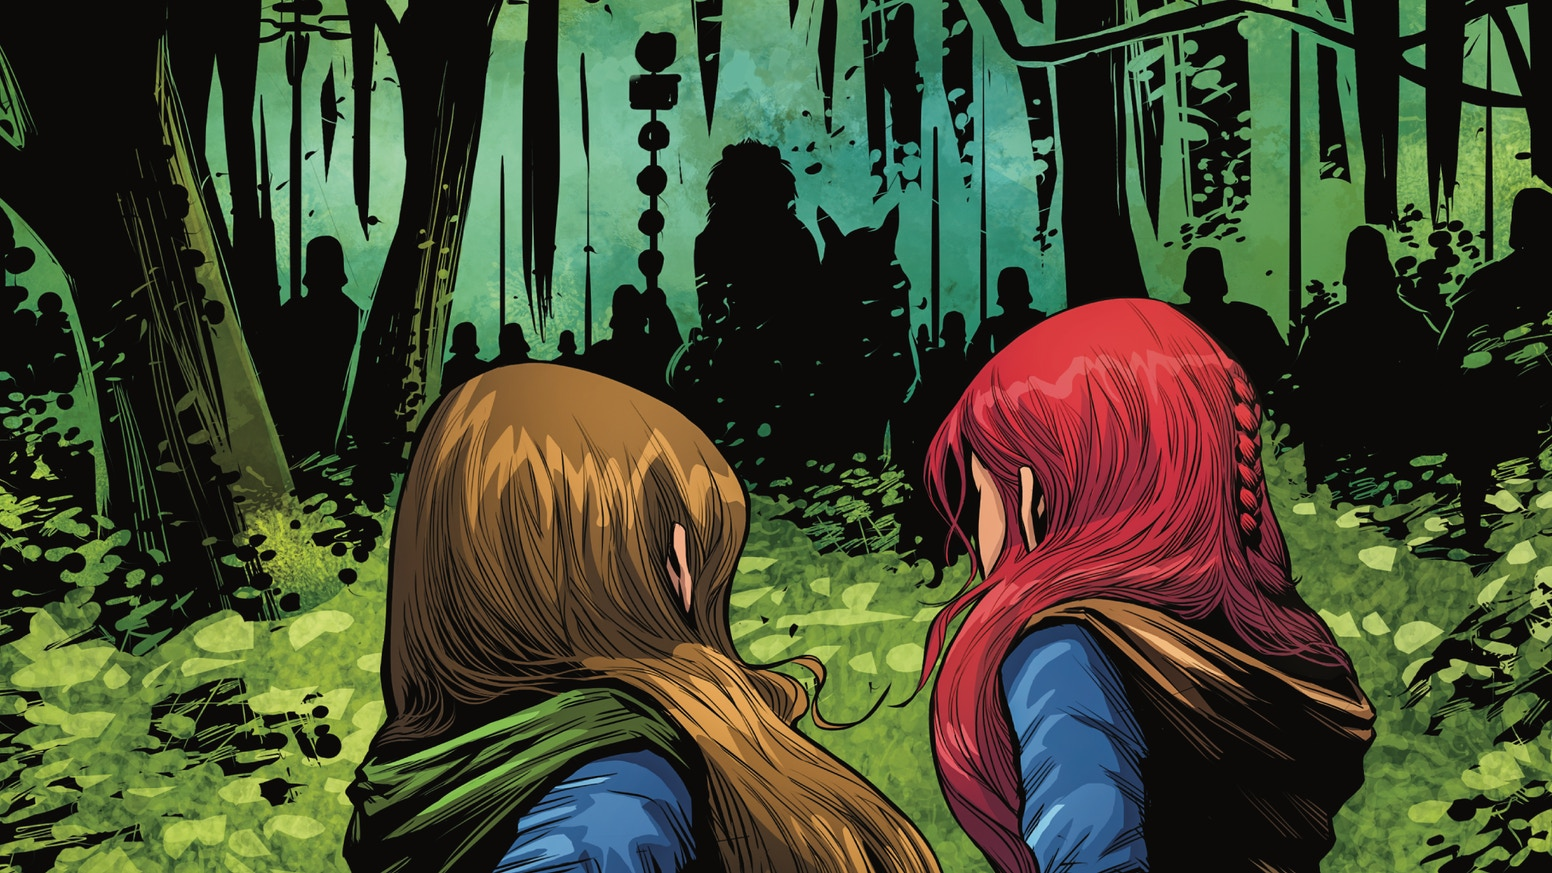 An 88-page full-color comic about three women rebelling against the Roman Empire.